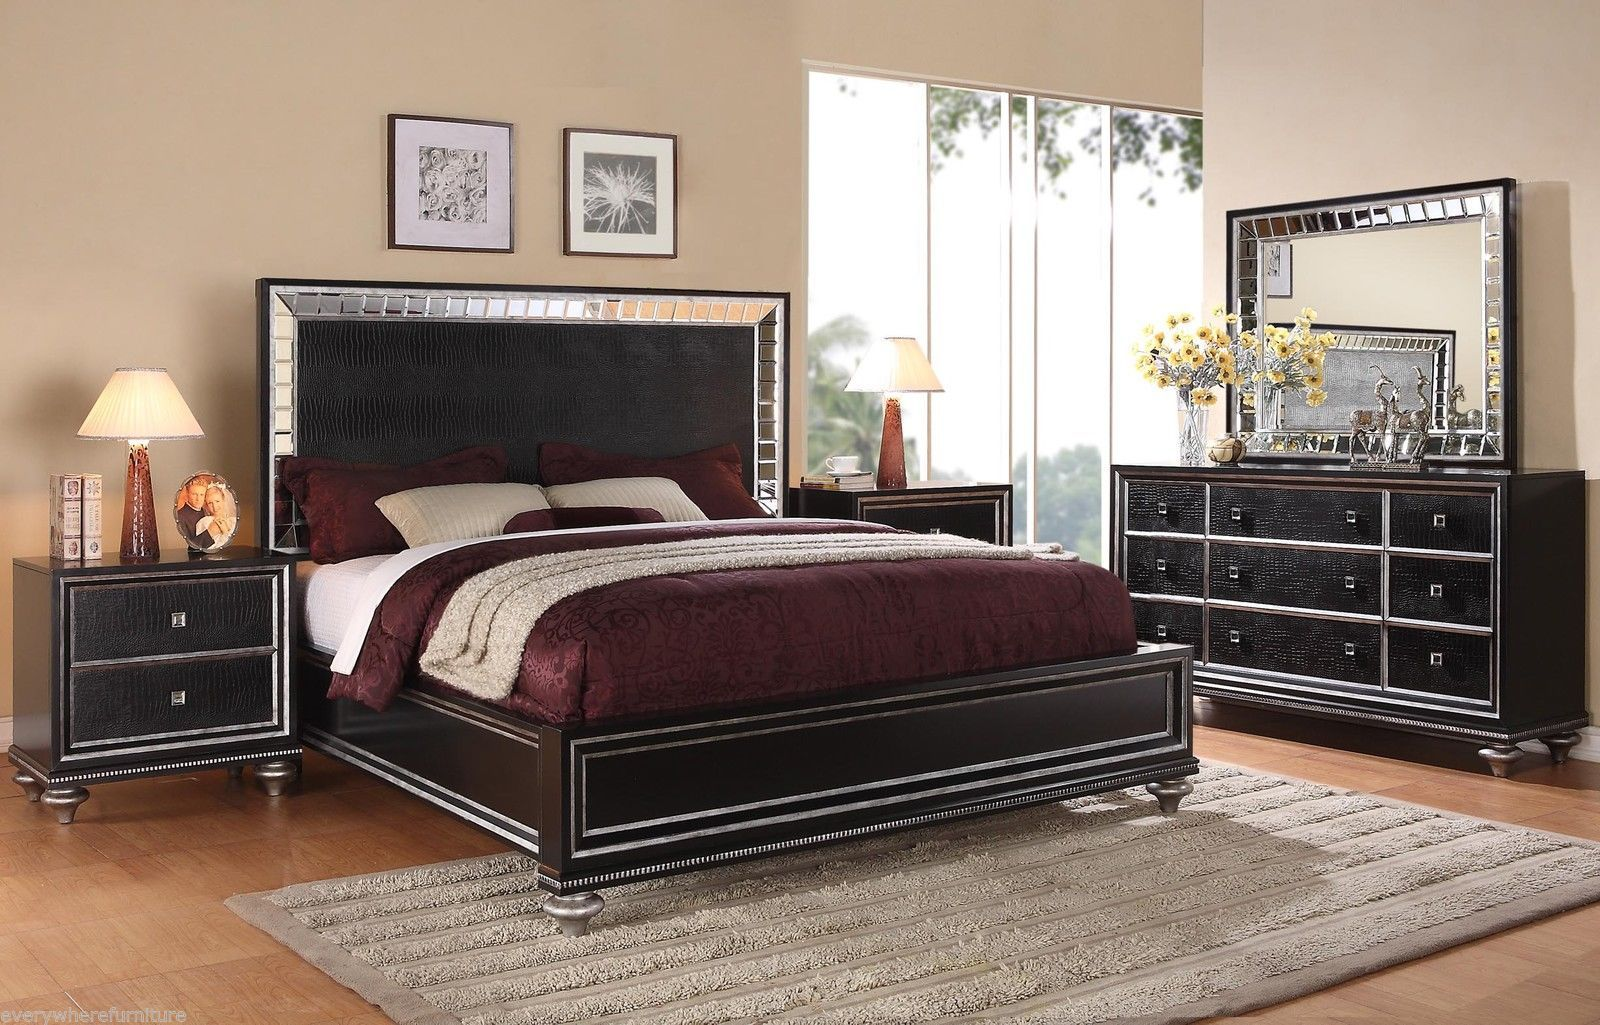 Best Wynwood Glam Black Mirrored King Size Mansion Bed Bedroom 400 x 300